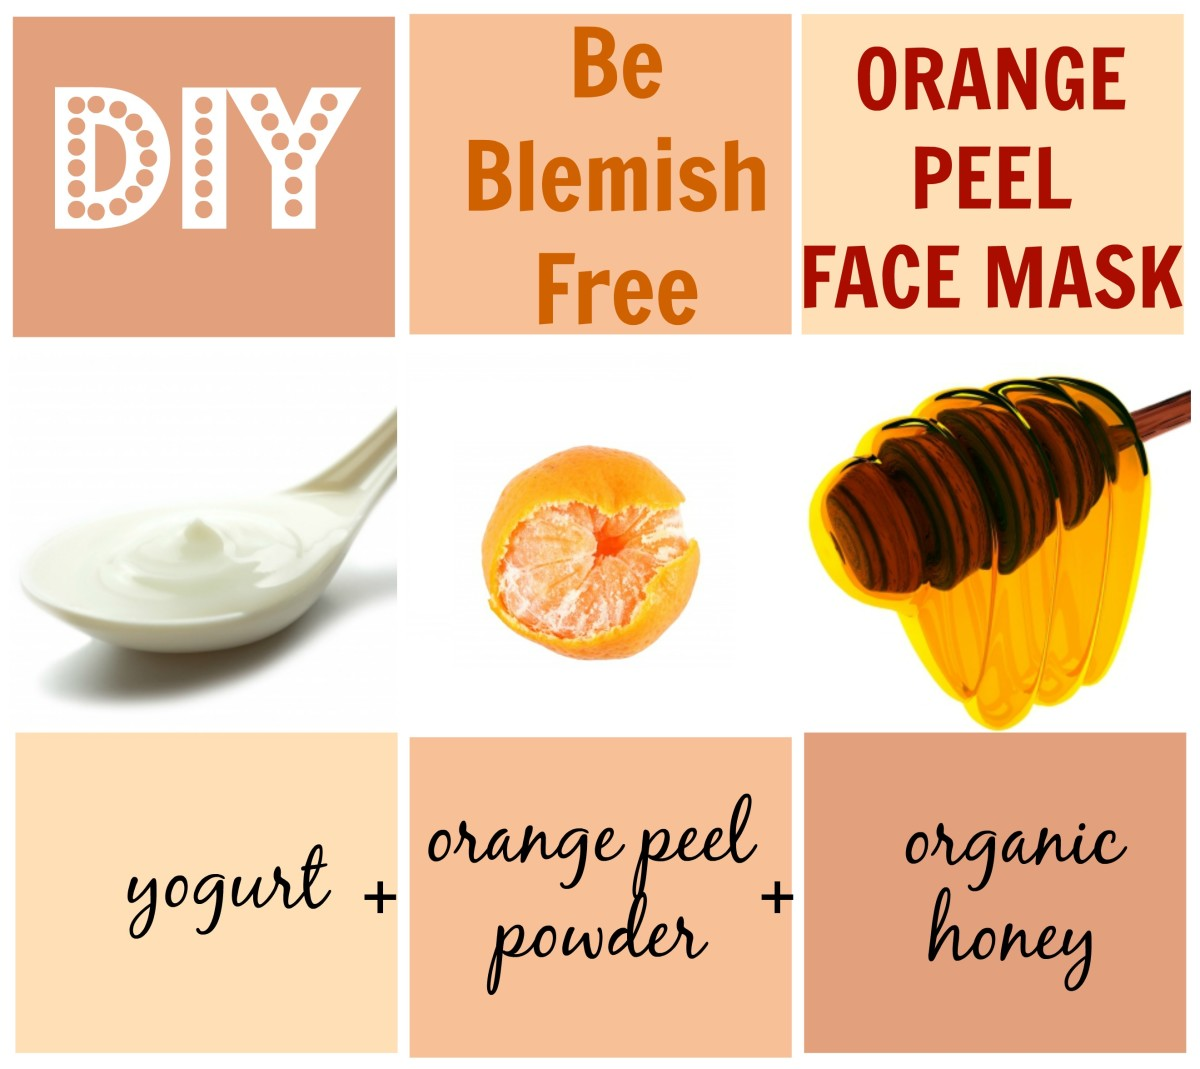 10 Recipes to Make a Mask for Blemishes At Home -  Are you looking for safe and easy ideas to get blemish free skin naturally at home? Here are 10 recipes to make a homemade facial mask for blemishes that can help you to get glowing complexion